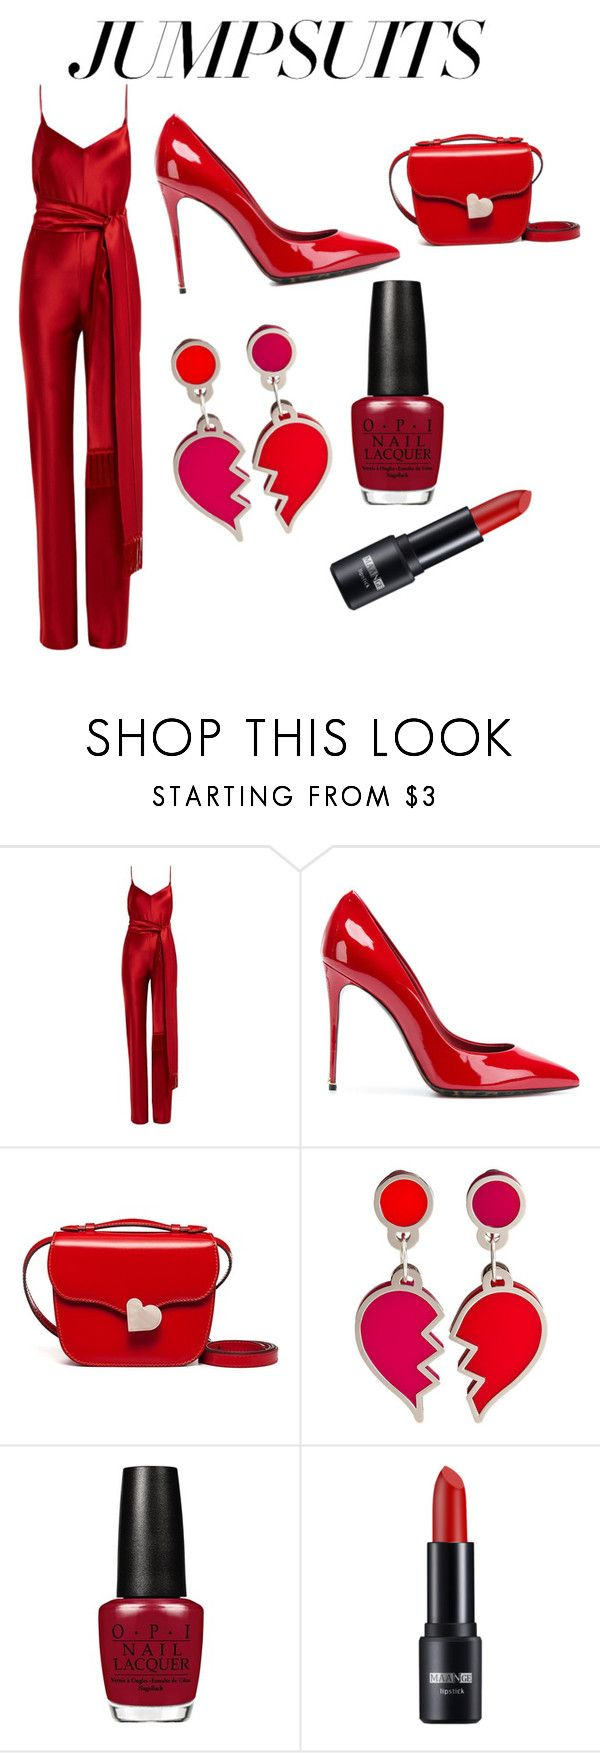 """Red jumpsuit"" by ingrid-zhou ❤ liked on Polyvore featuring Galvan, Dolce&Gabbana, Marni and jumpsuits"